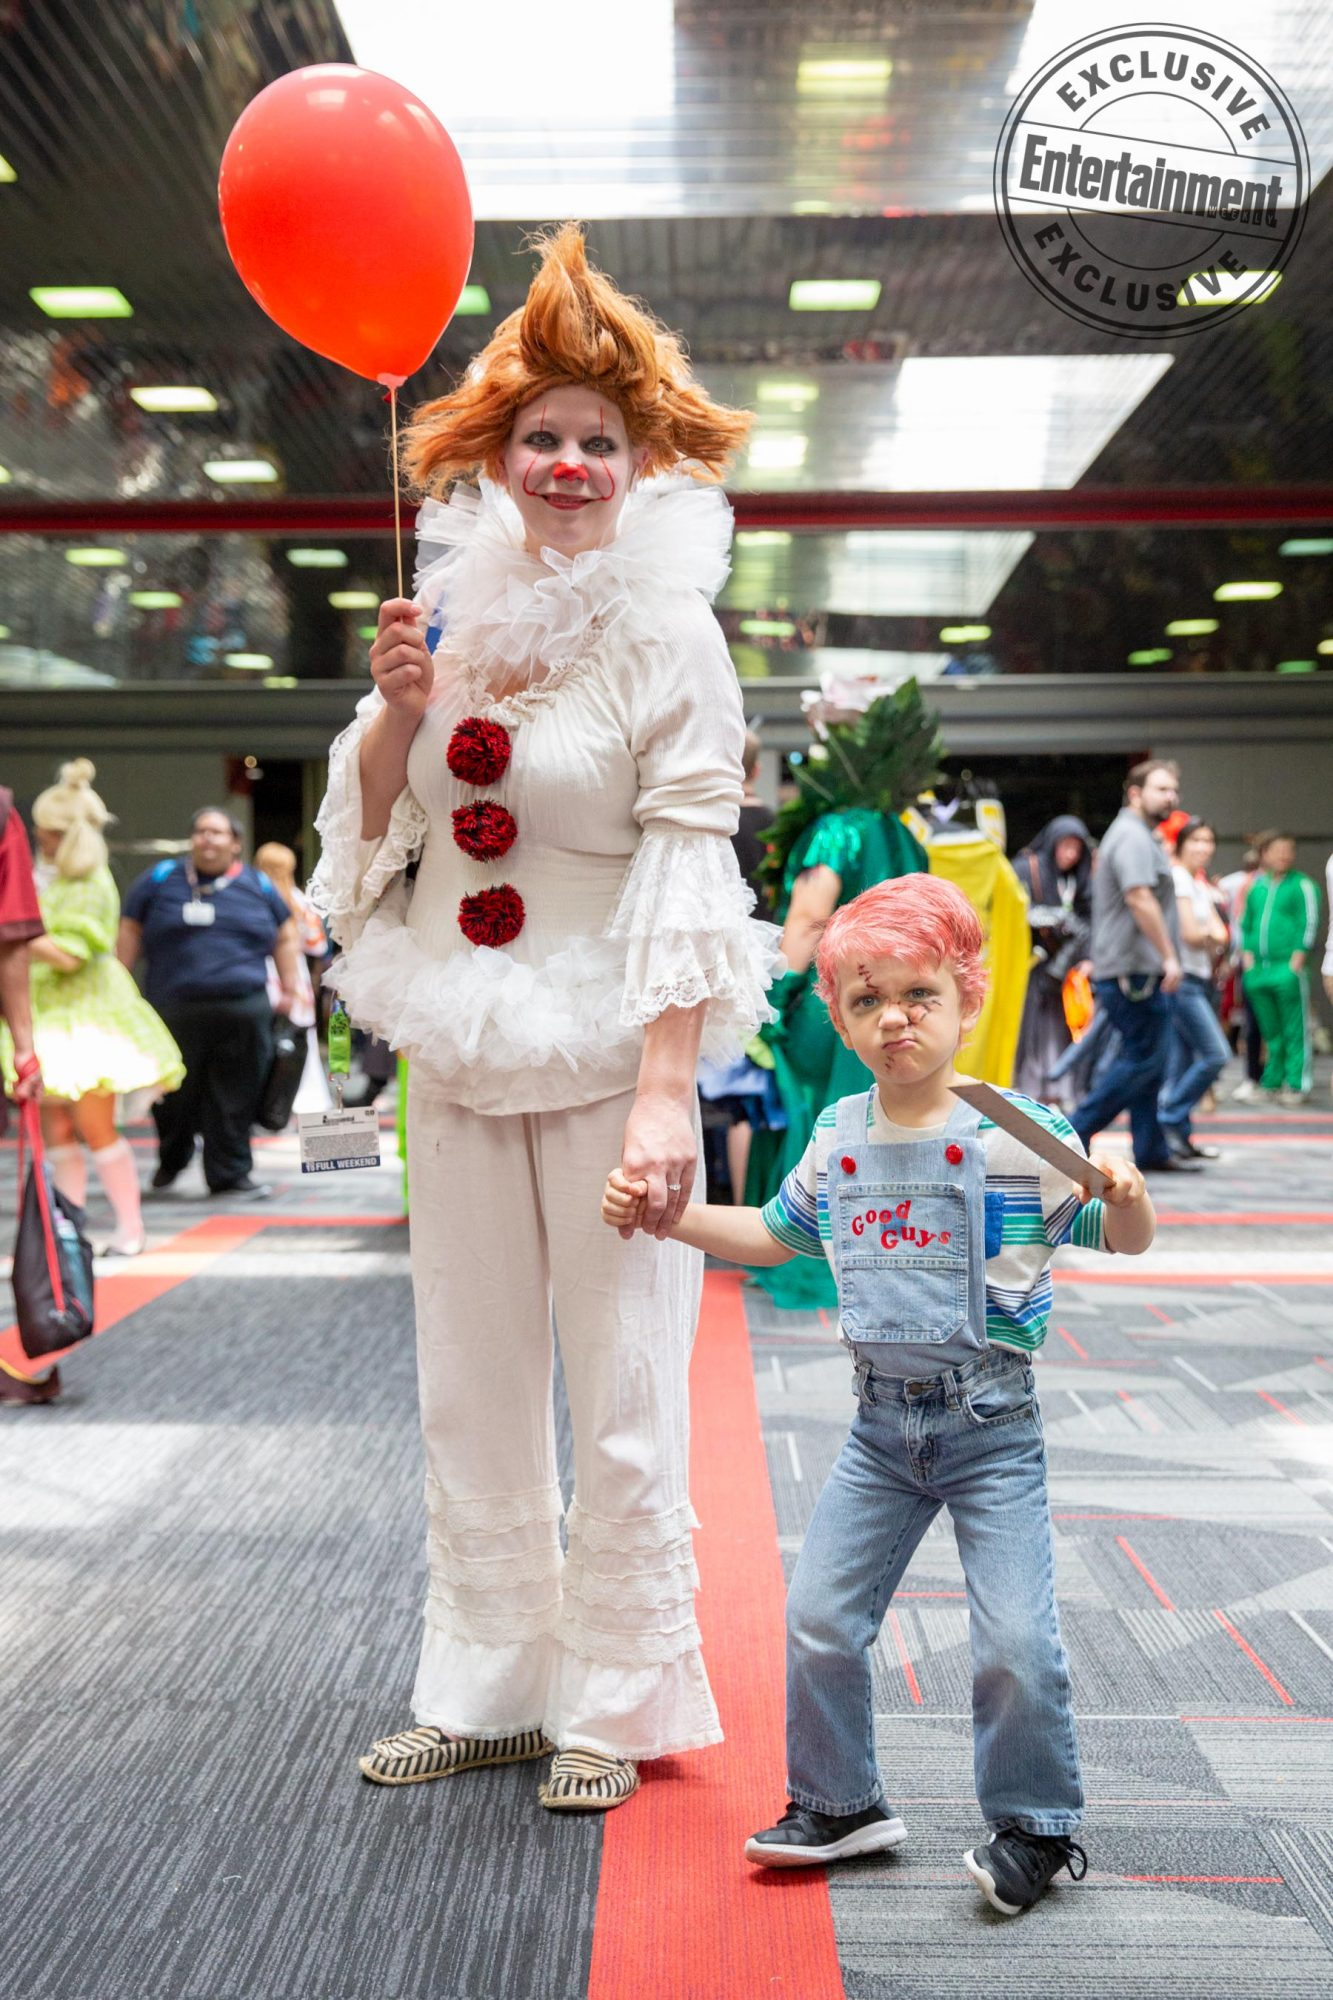 Anime Central 2019 cosplayers photographed on May 18th and 19th in Chicago, IL by Chris Cosgrove for Entertainment Weekly. -- Pictured: Pennywise from It and Chucky from Child's Play cosplayers